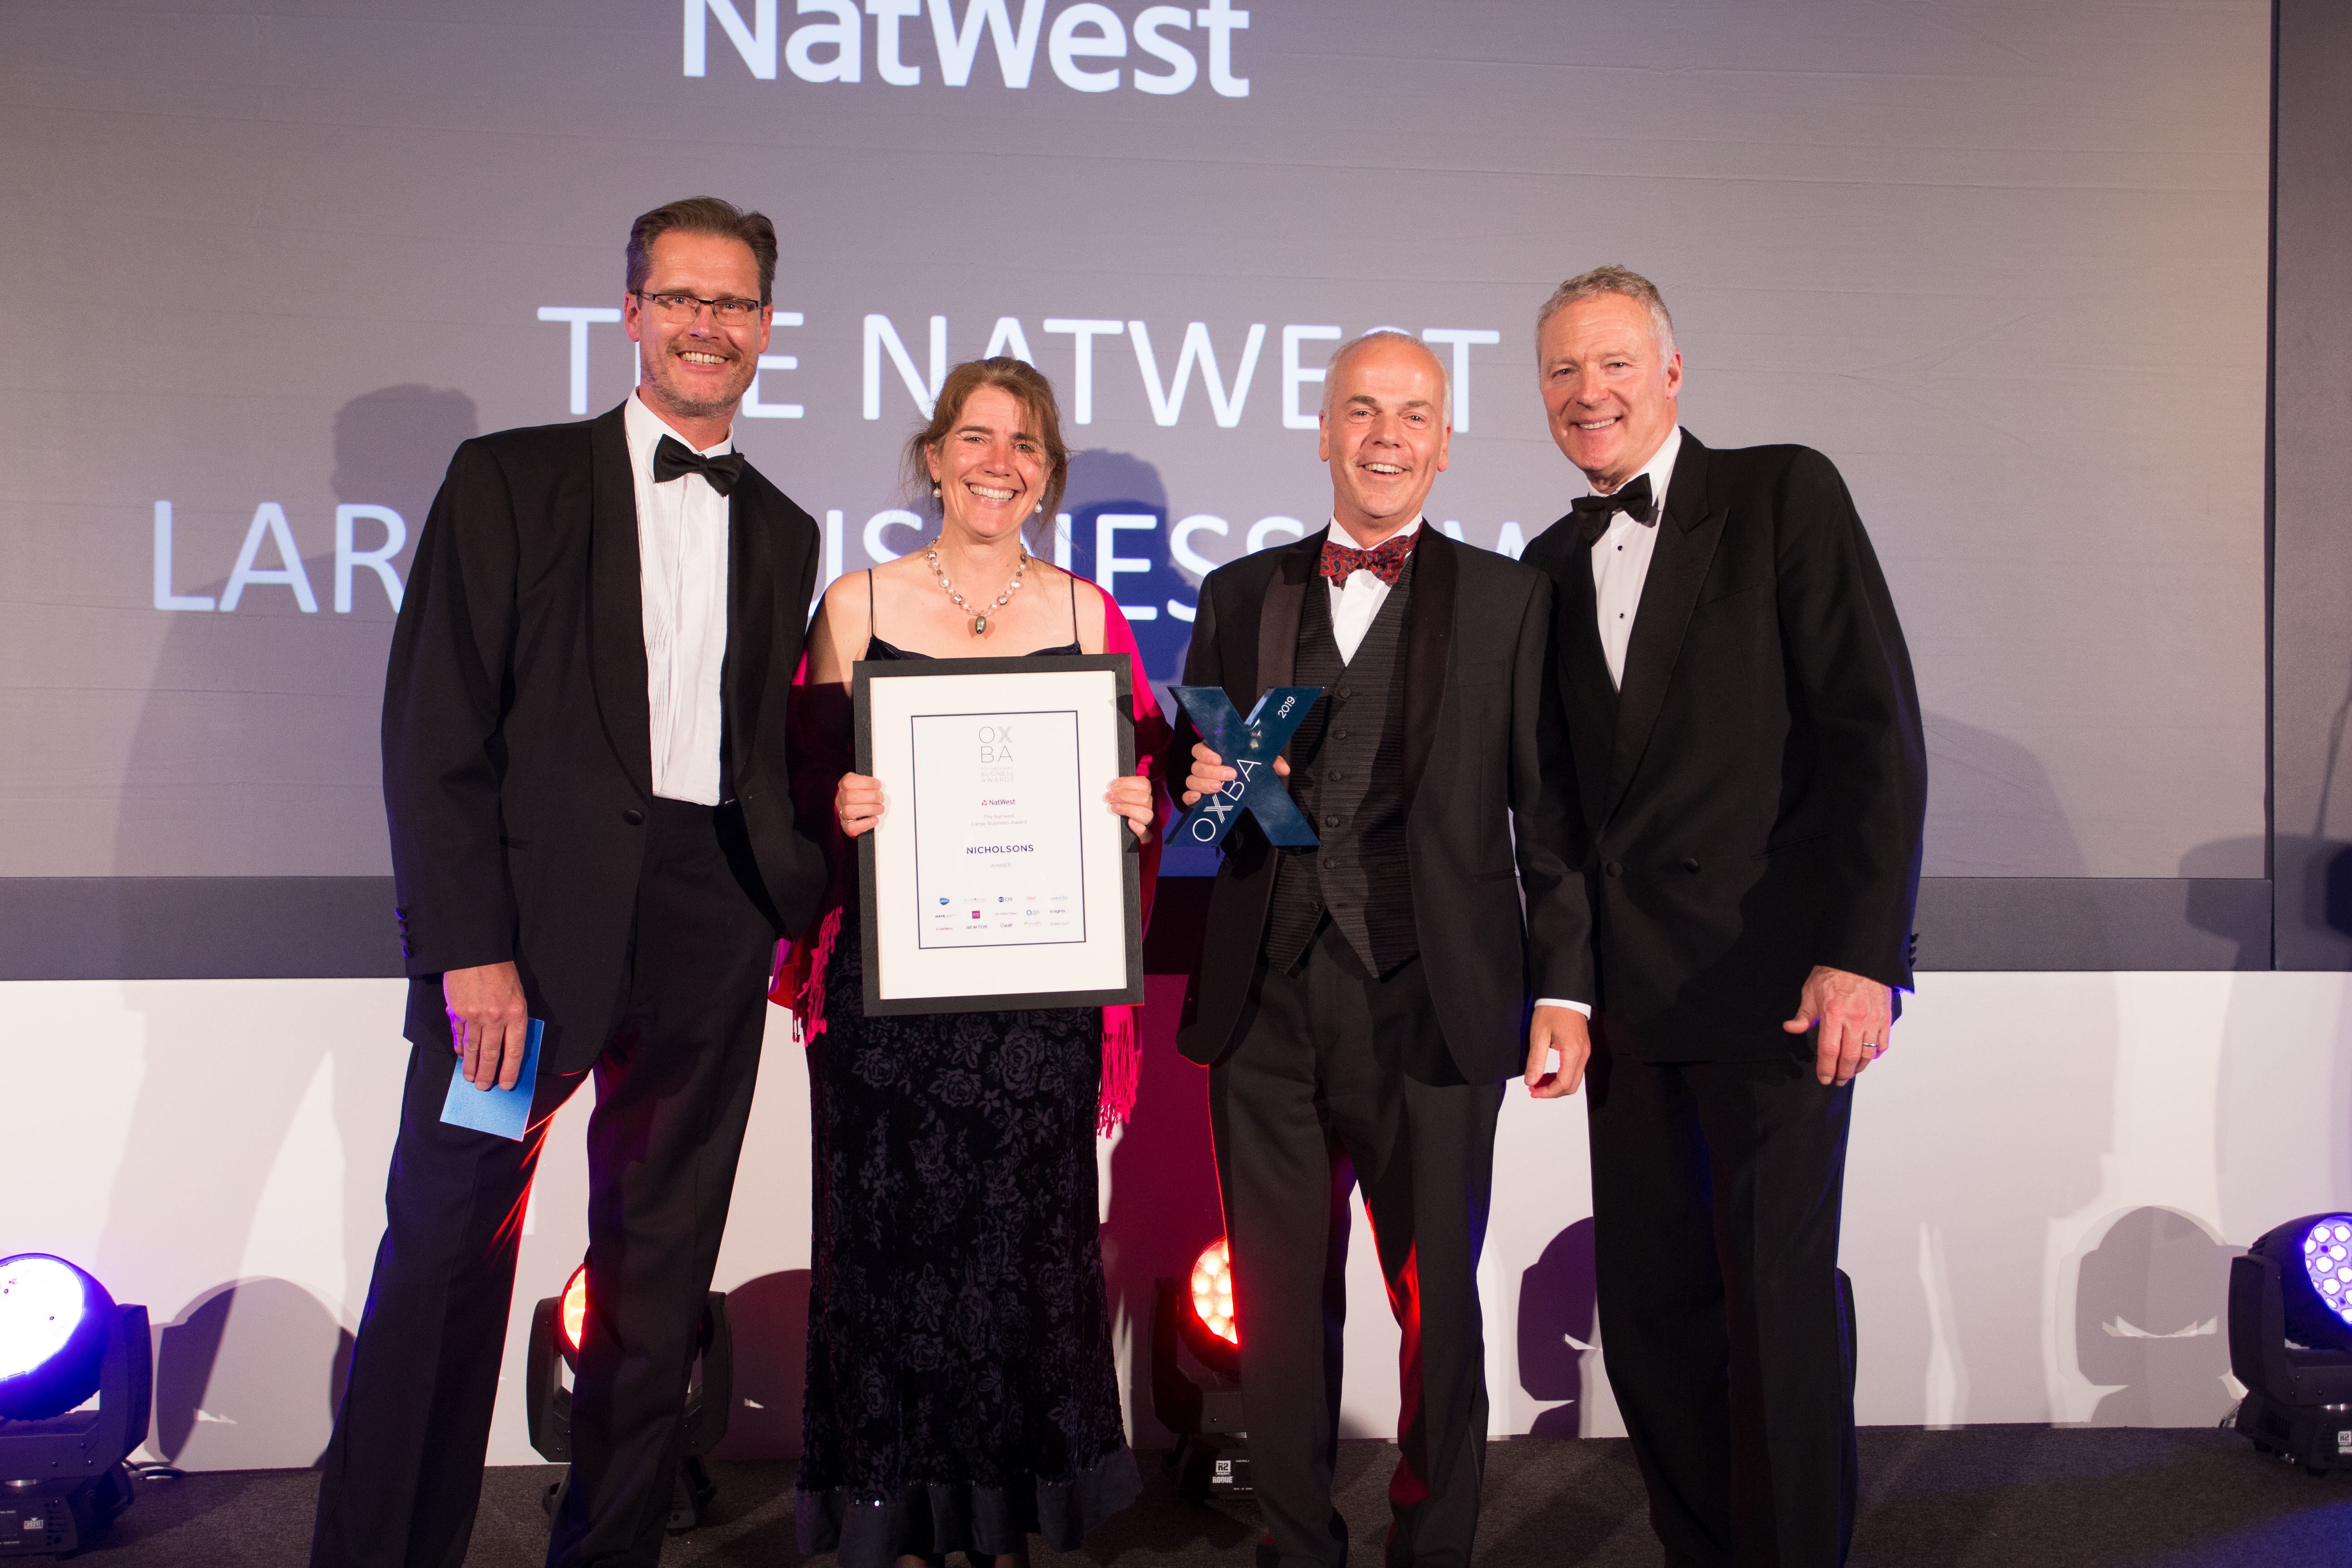 The NatWest Large Business Award